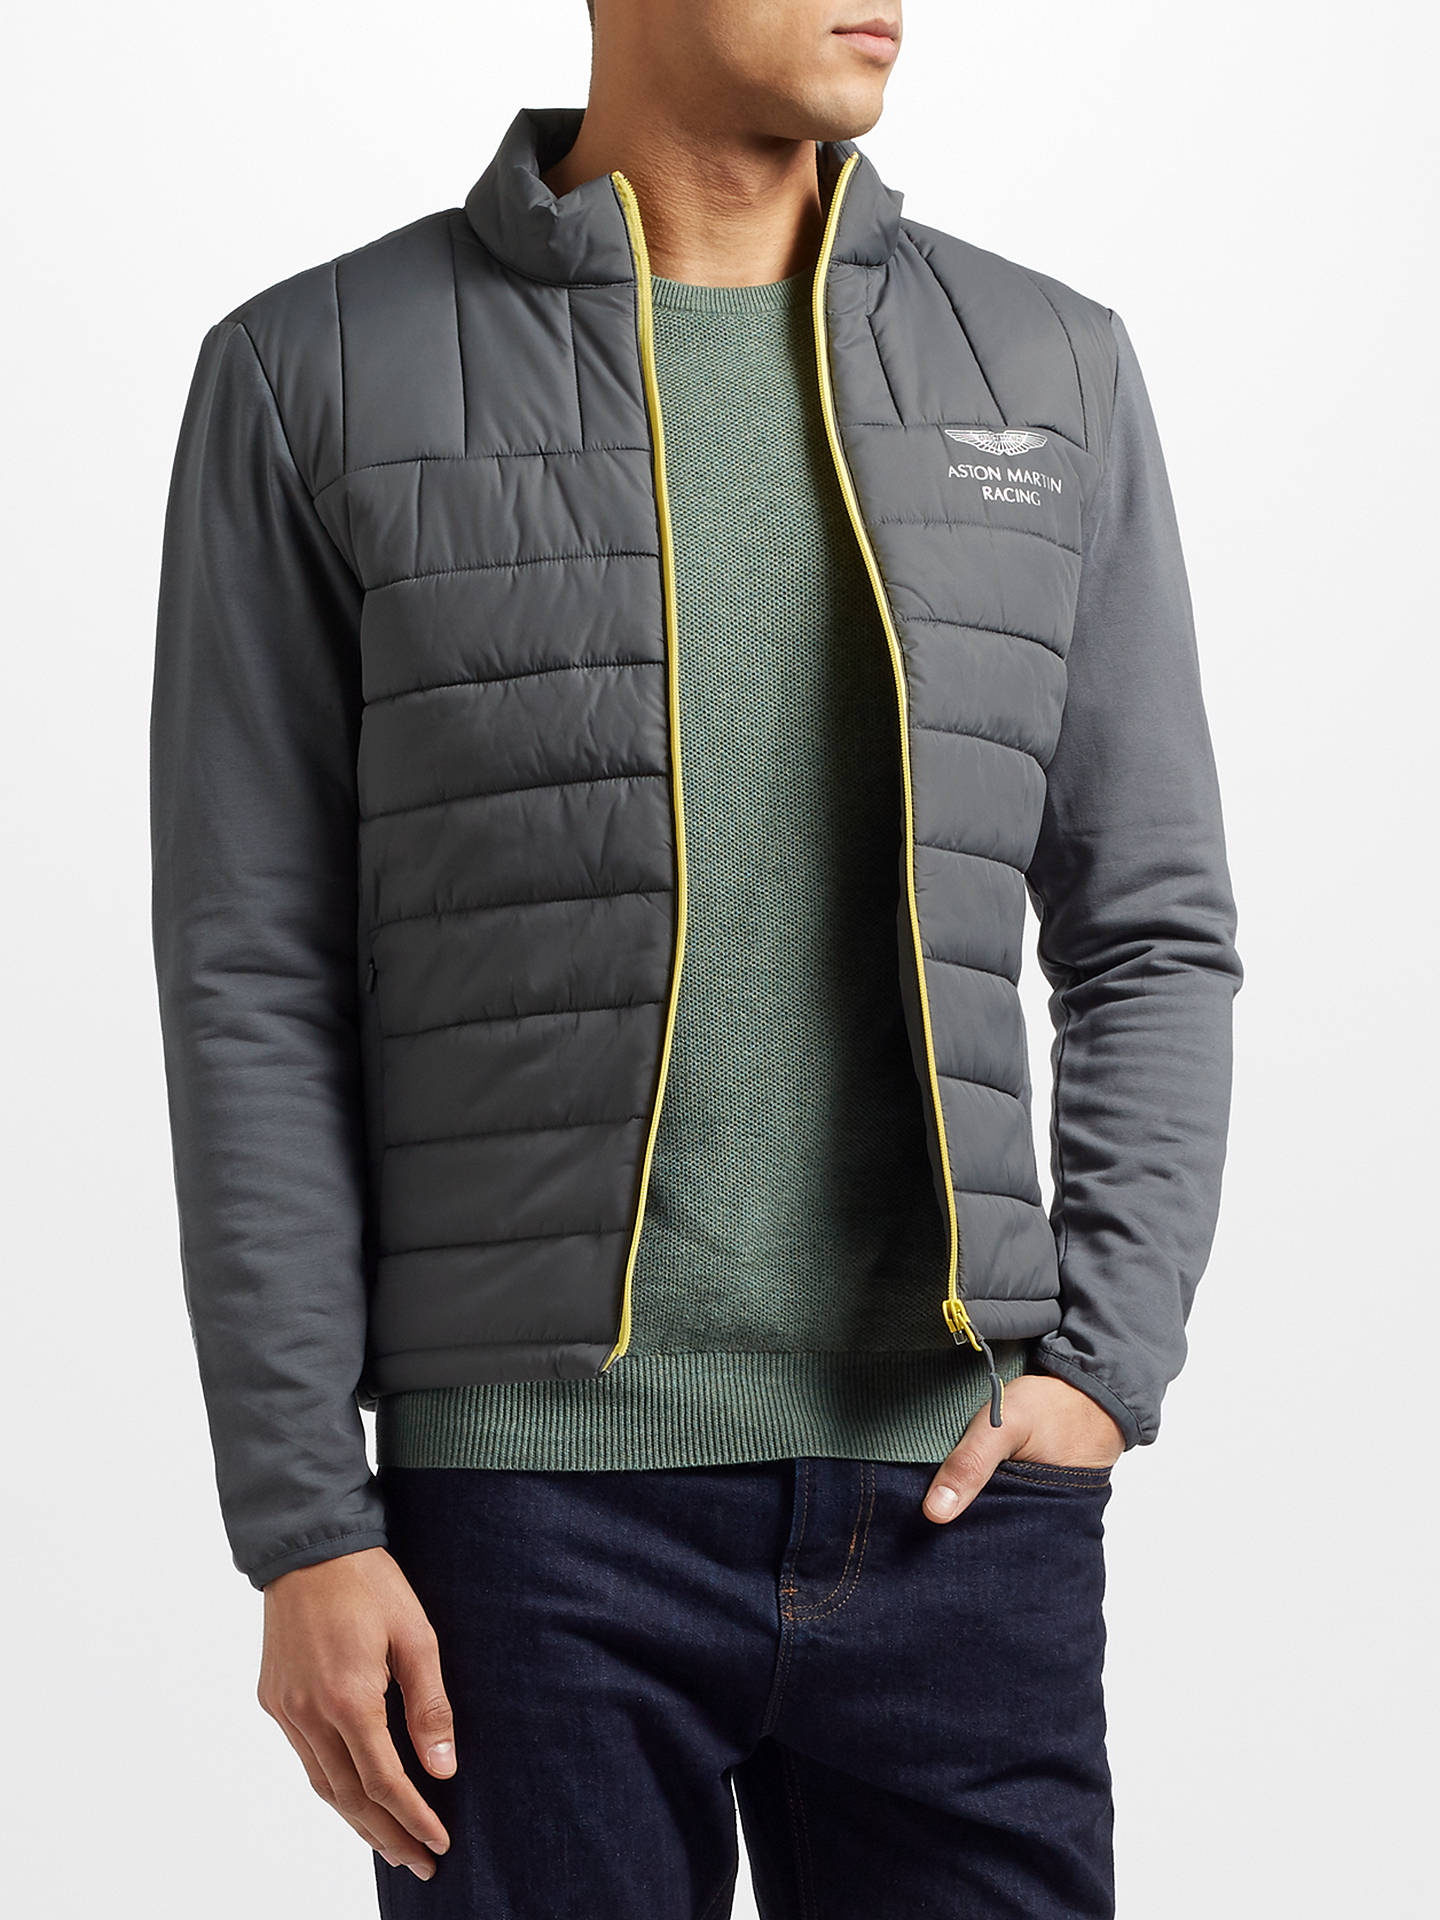 Hackett London Aston Martin Racing Quilted Jacket Steel Grey At